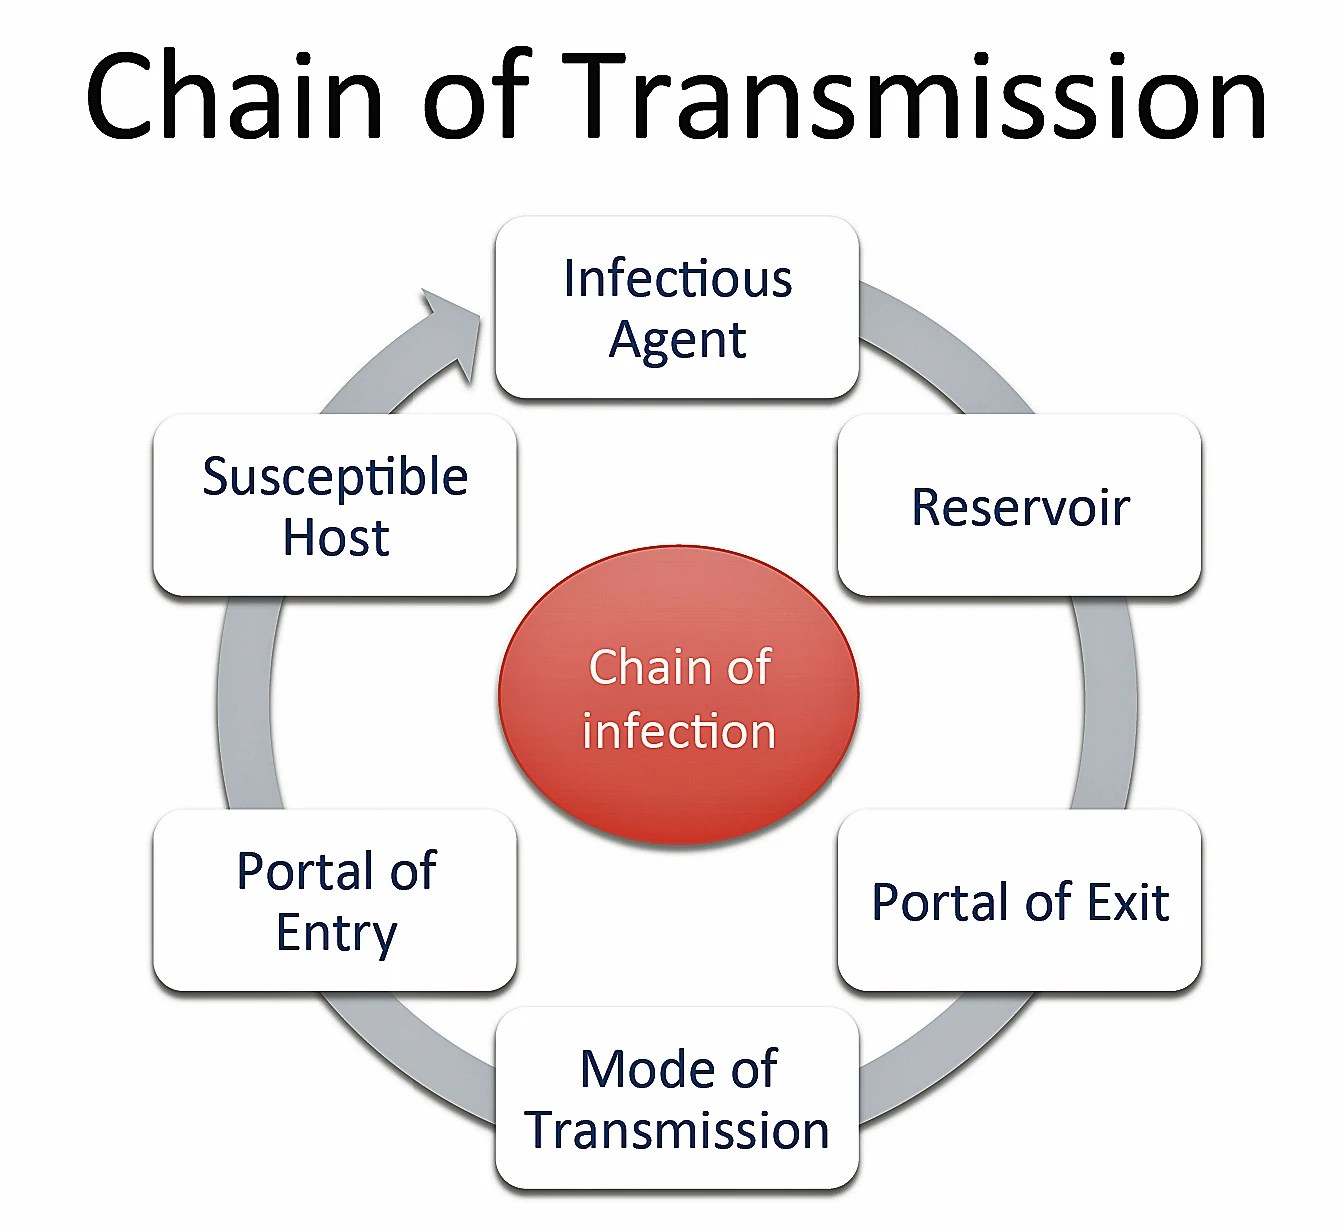 chain of transmission disease detectives wiki fandom powered by wikia [ 1343 x 1231 Pixel ]